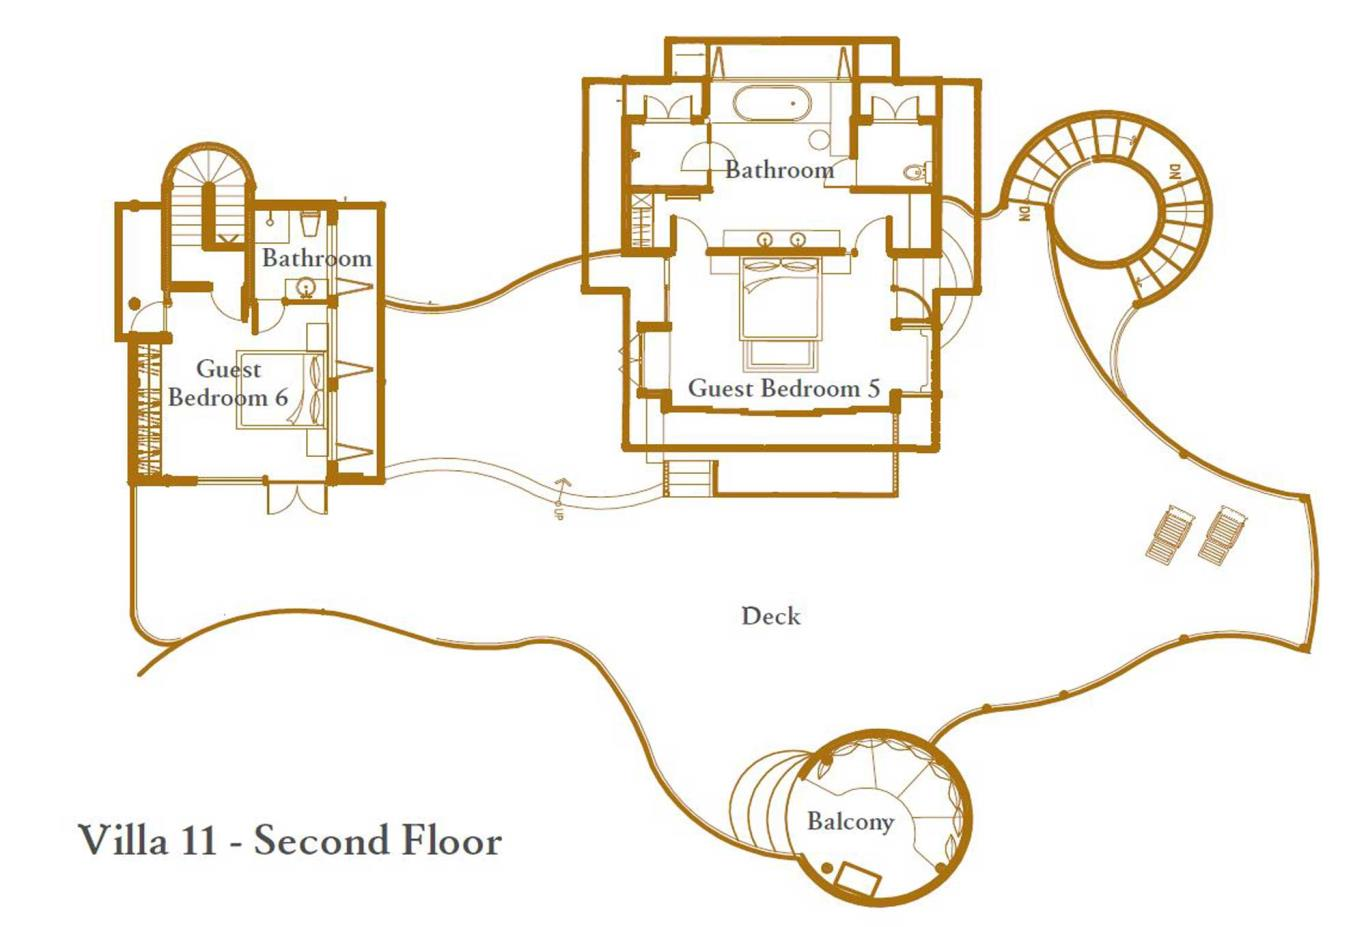 Villa 11 Second Floor Floorplan